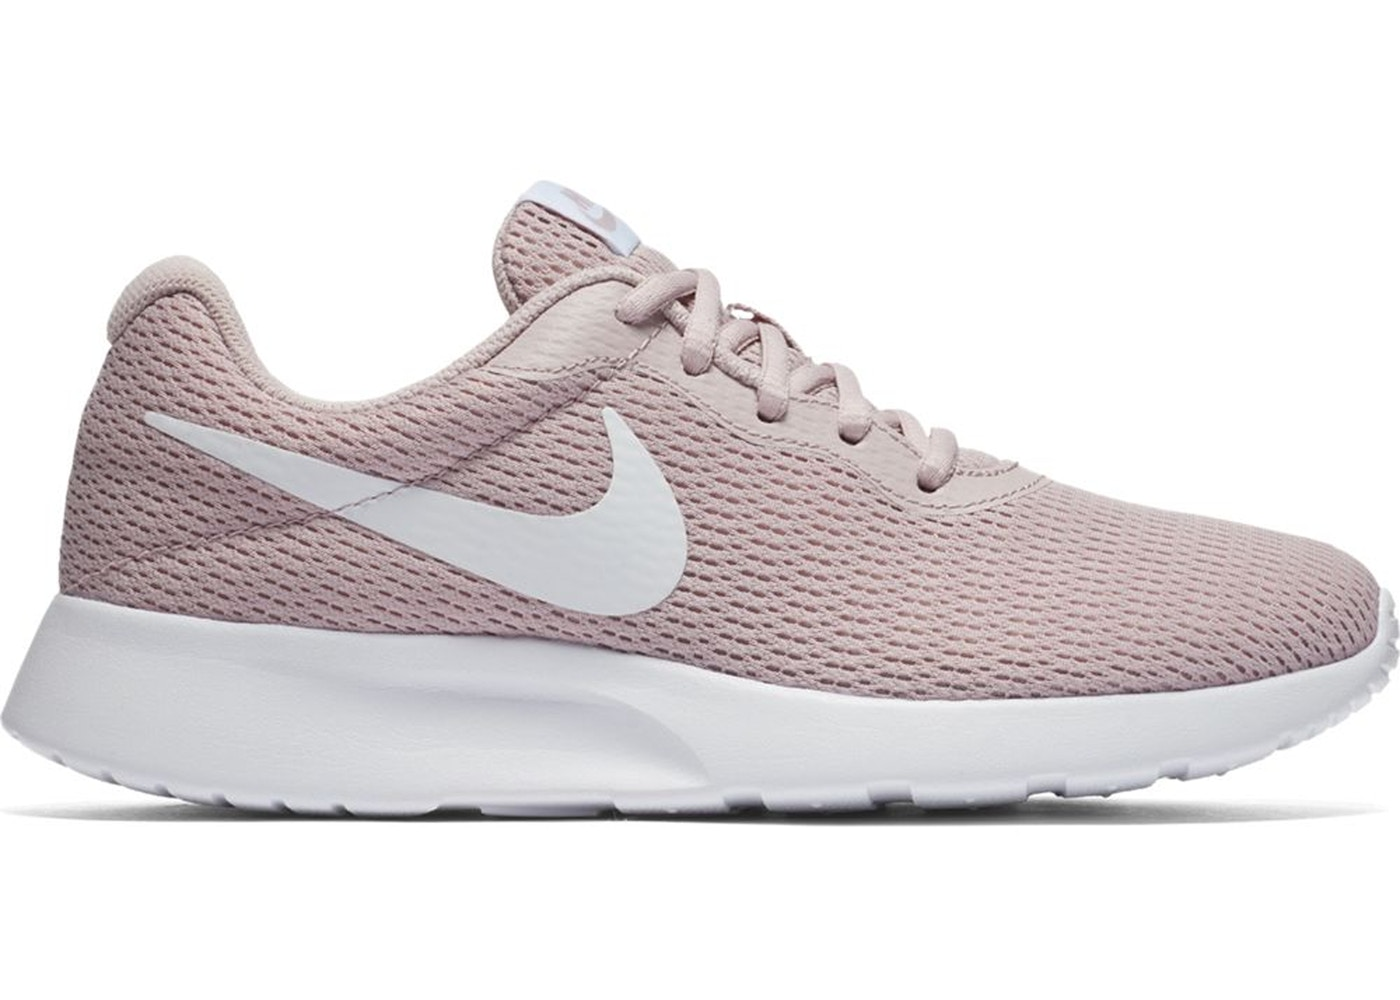 6e83fb1dc7 Sell. or Ask. Size: 7W. View All Bids. Nike Tanjun Particle Rose ...